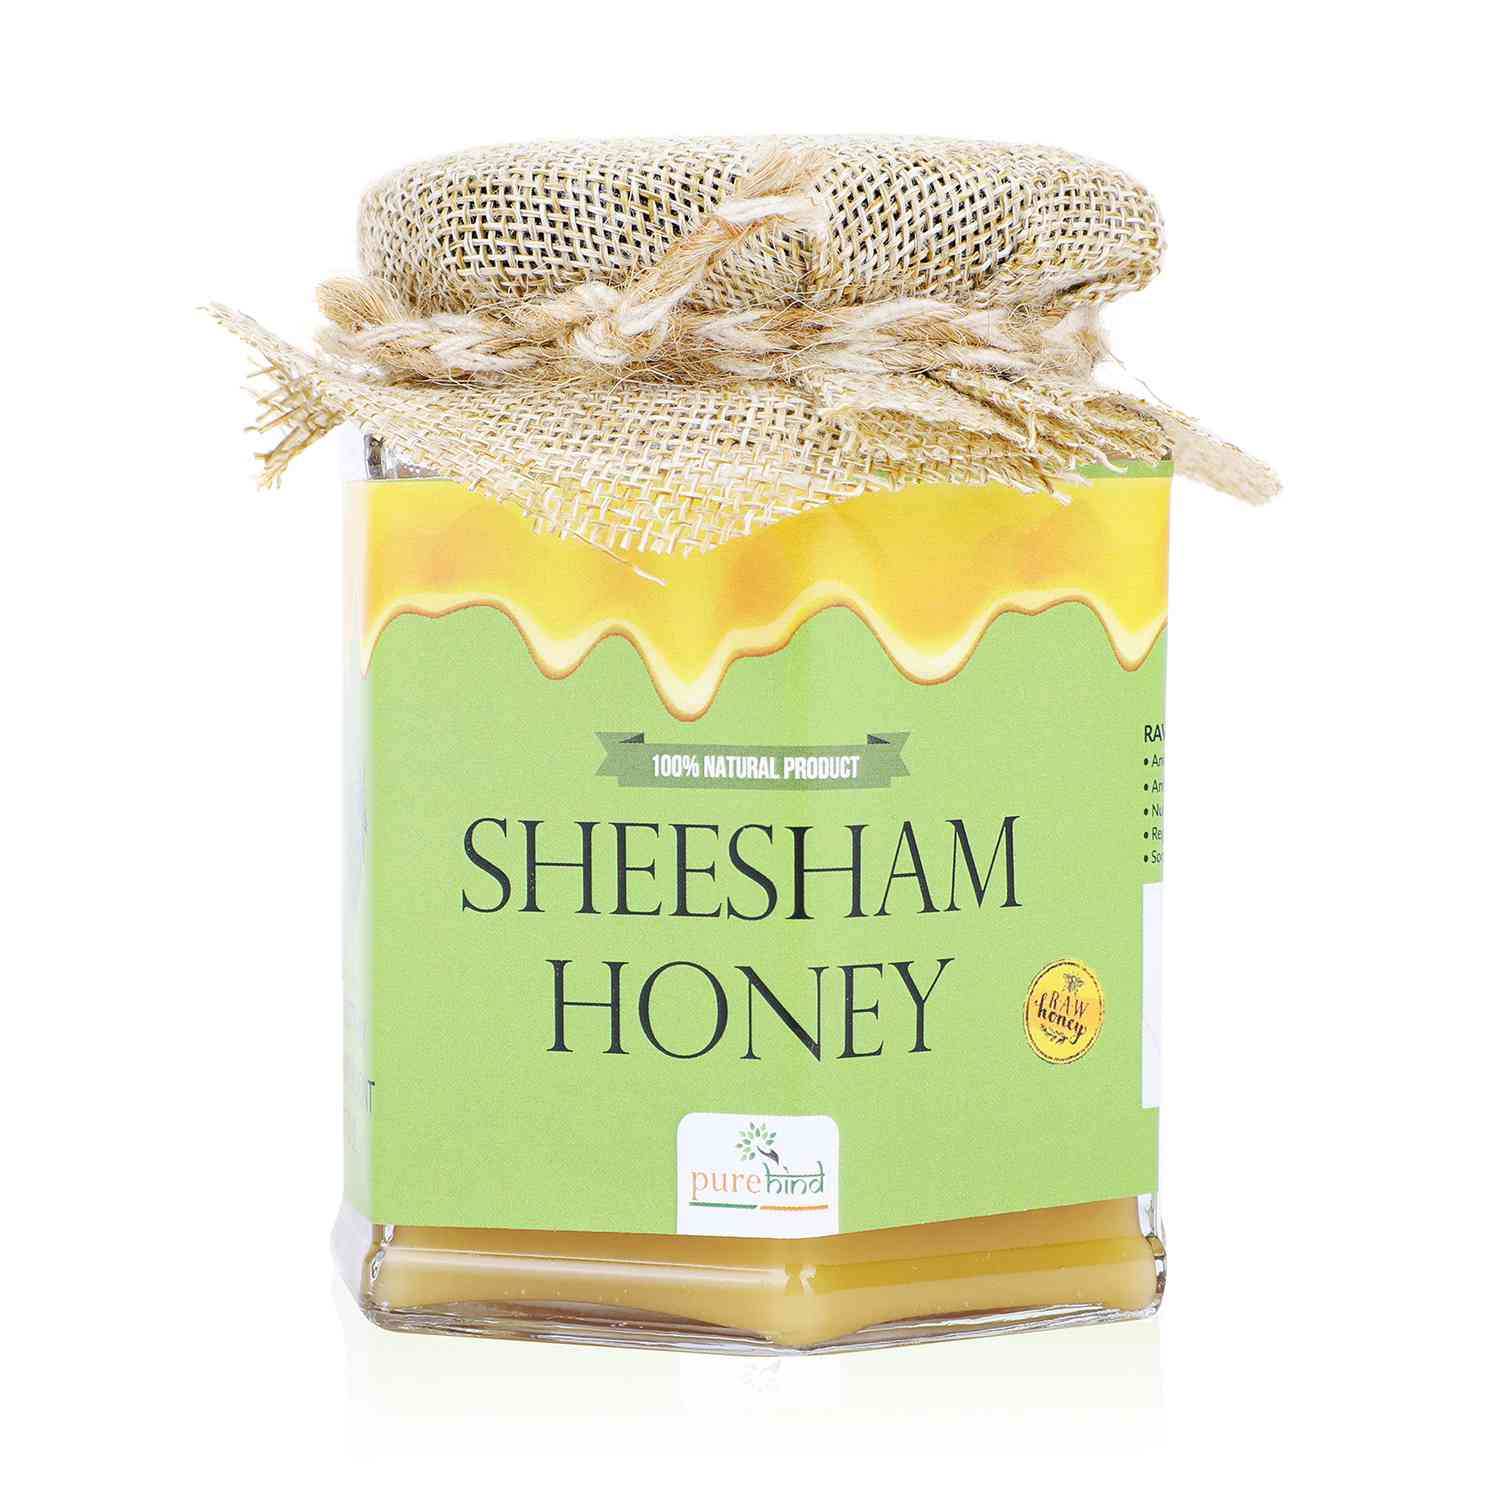 PUREHIND SHEESHAM HONEY